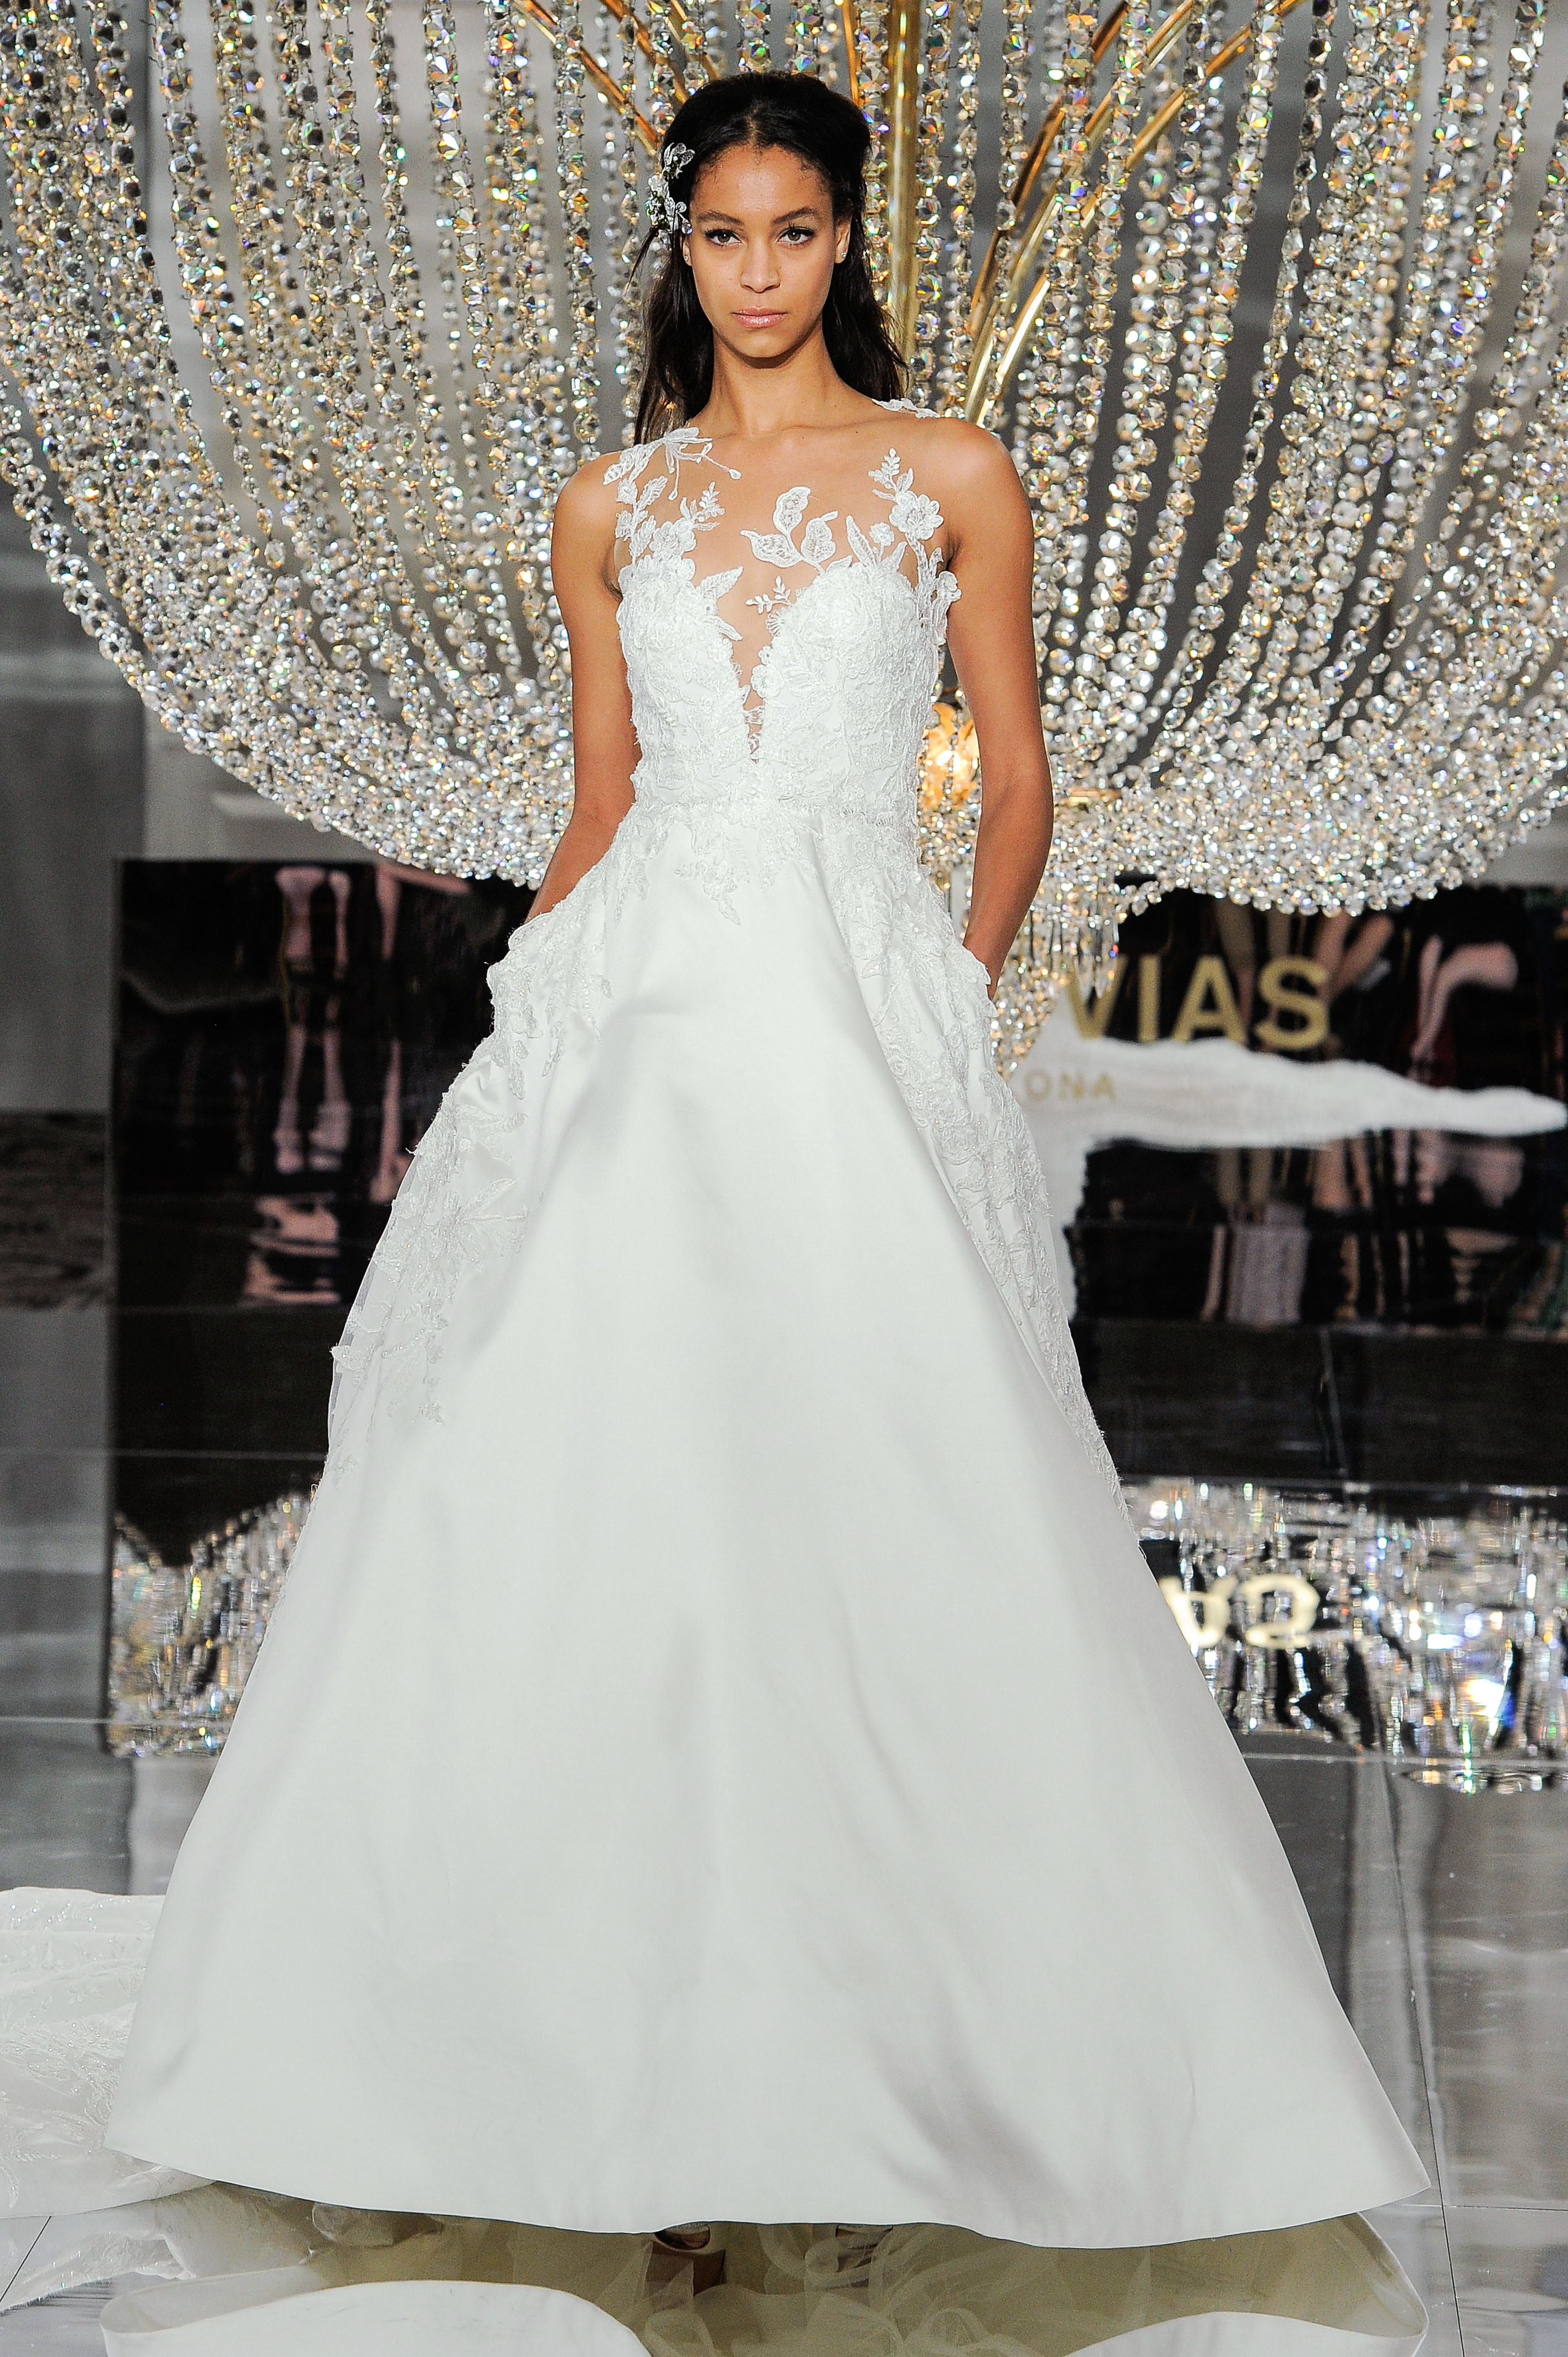 pronovias wedding dress fall 2018 illusion ball gown embellished